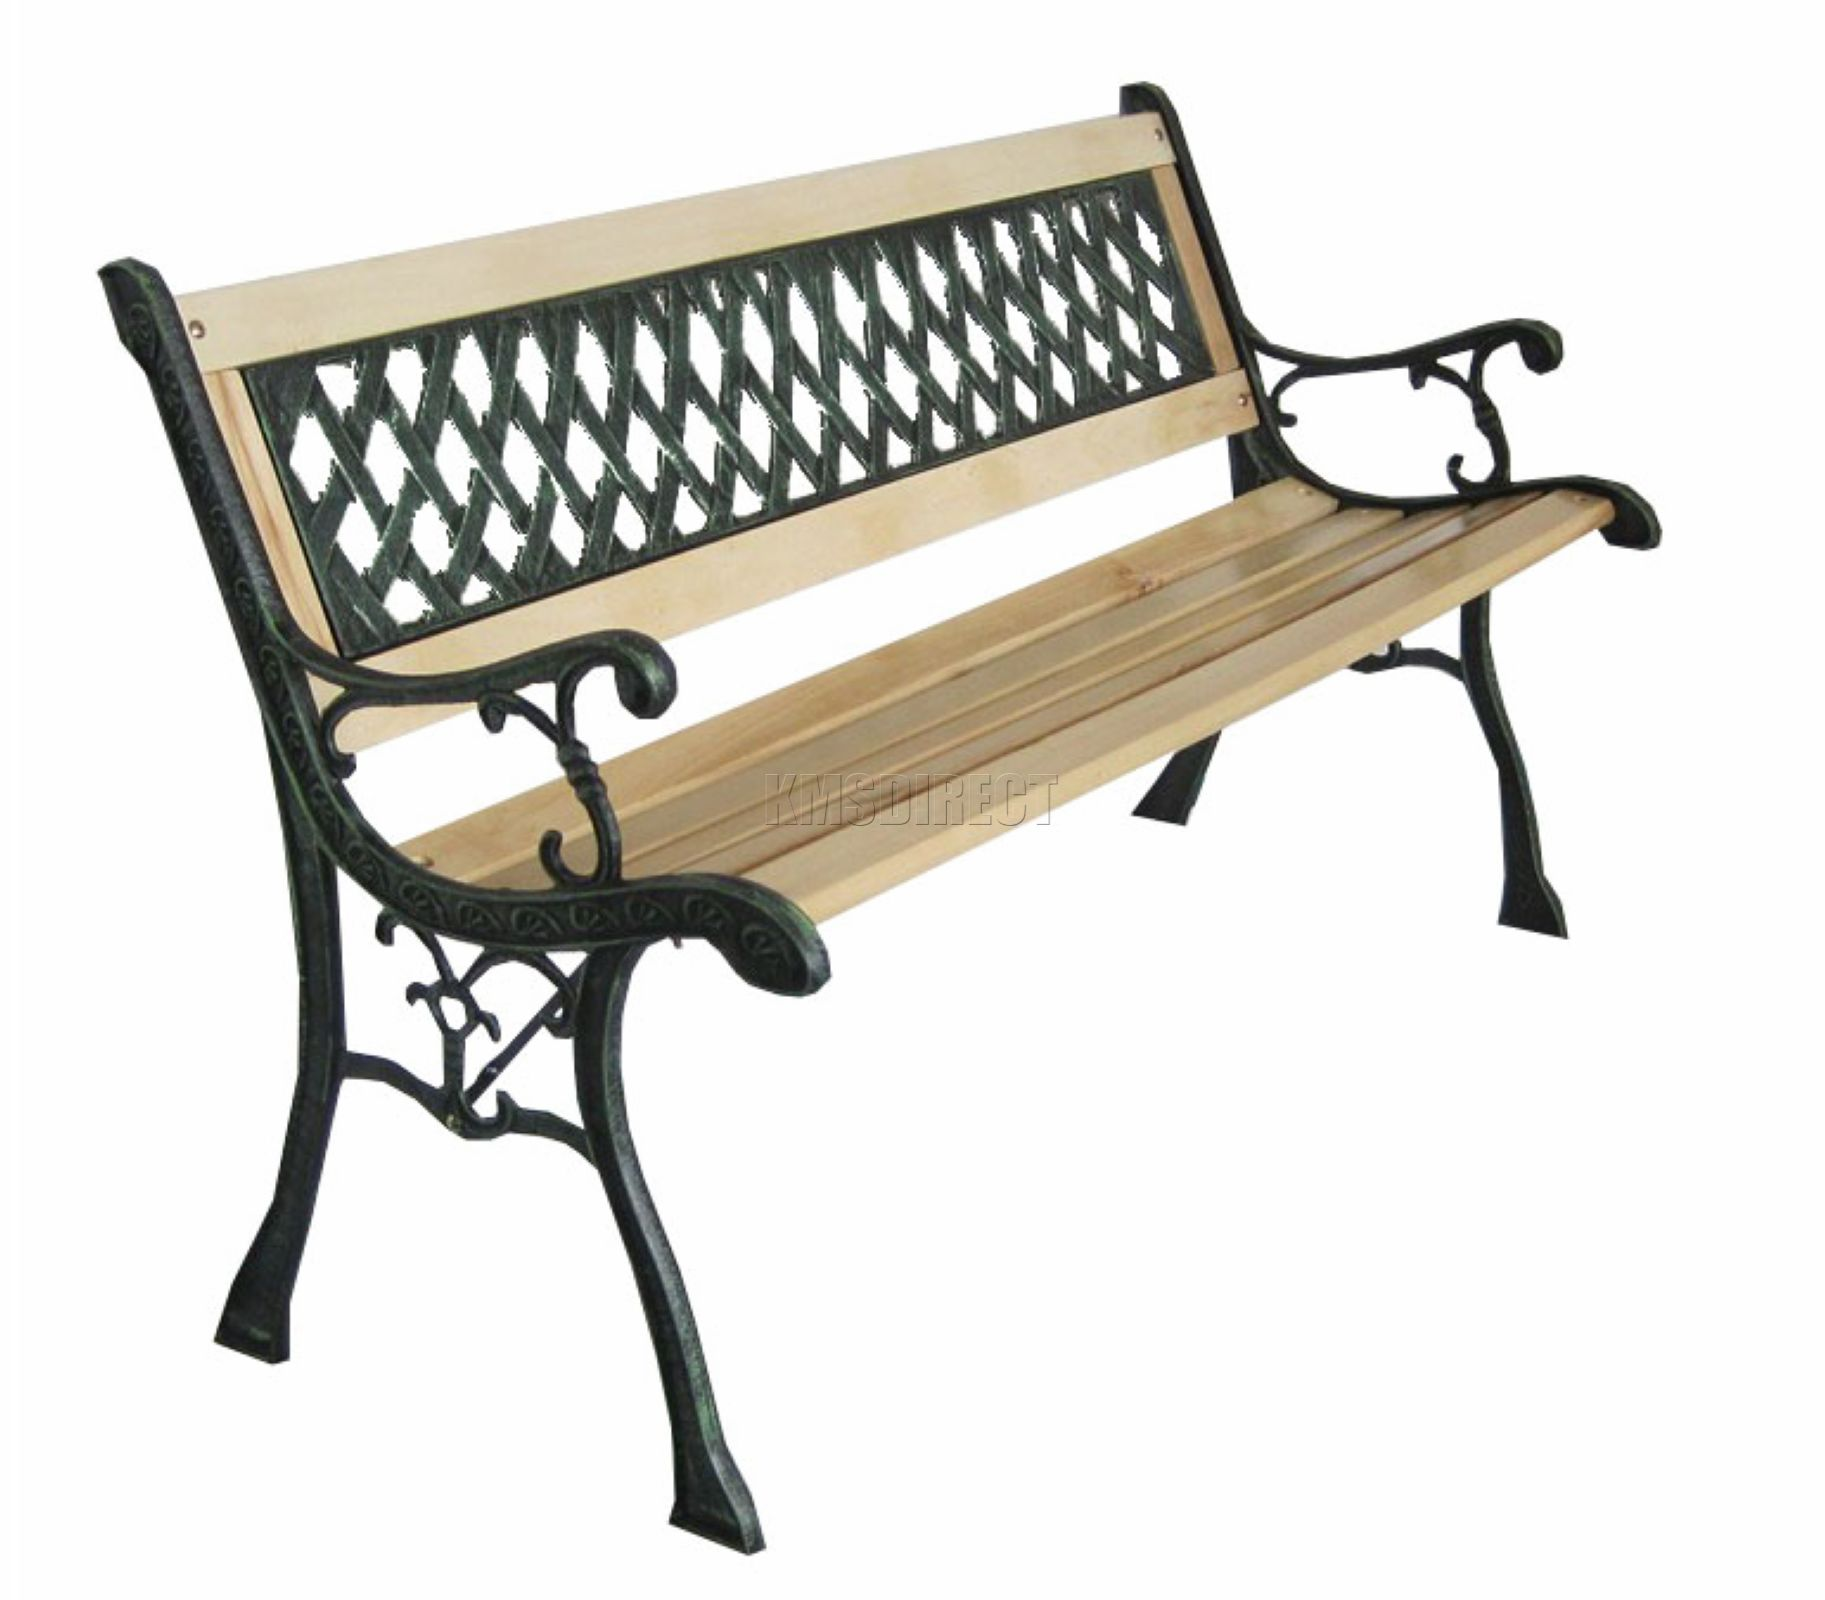 Kms 3 Seater Outdoor Wooden Garden Bench With Cast Iron Legs Park Seat Furniture Ebay